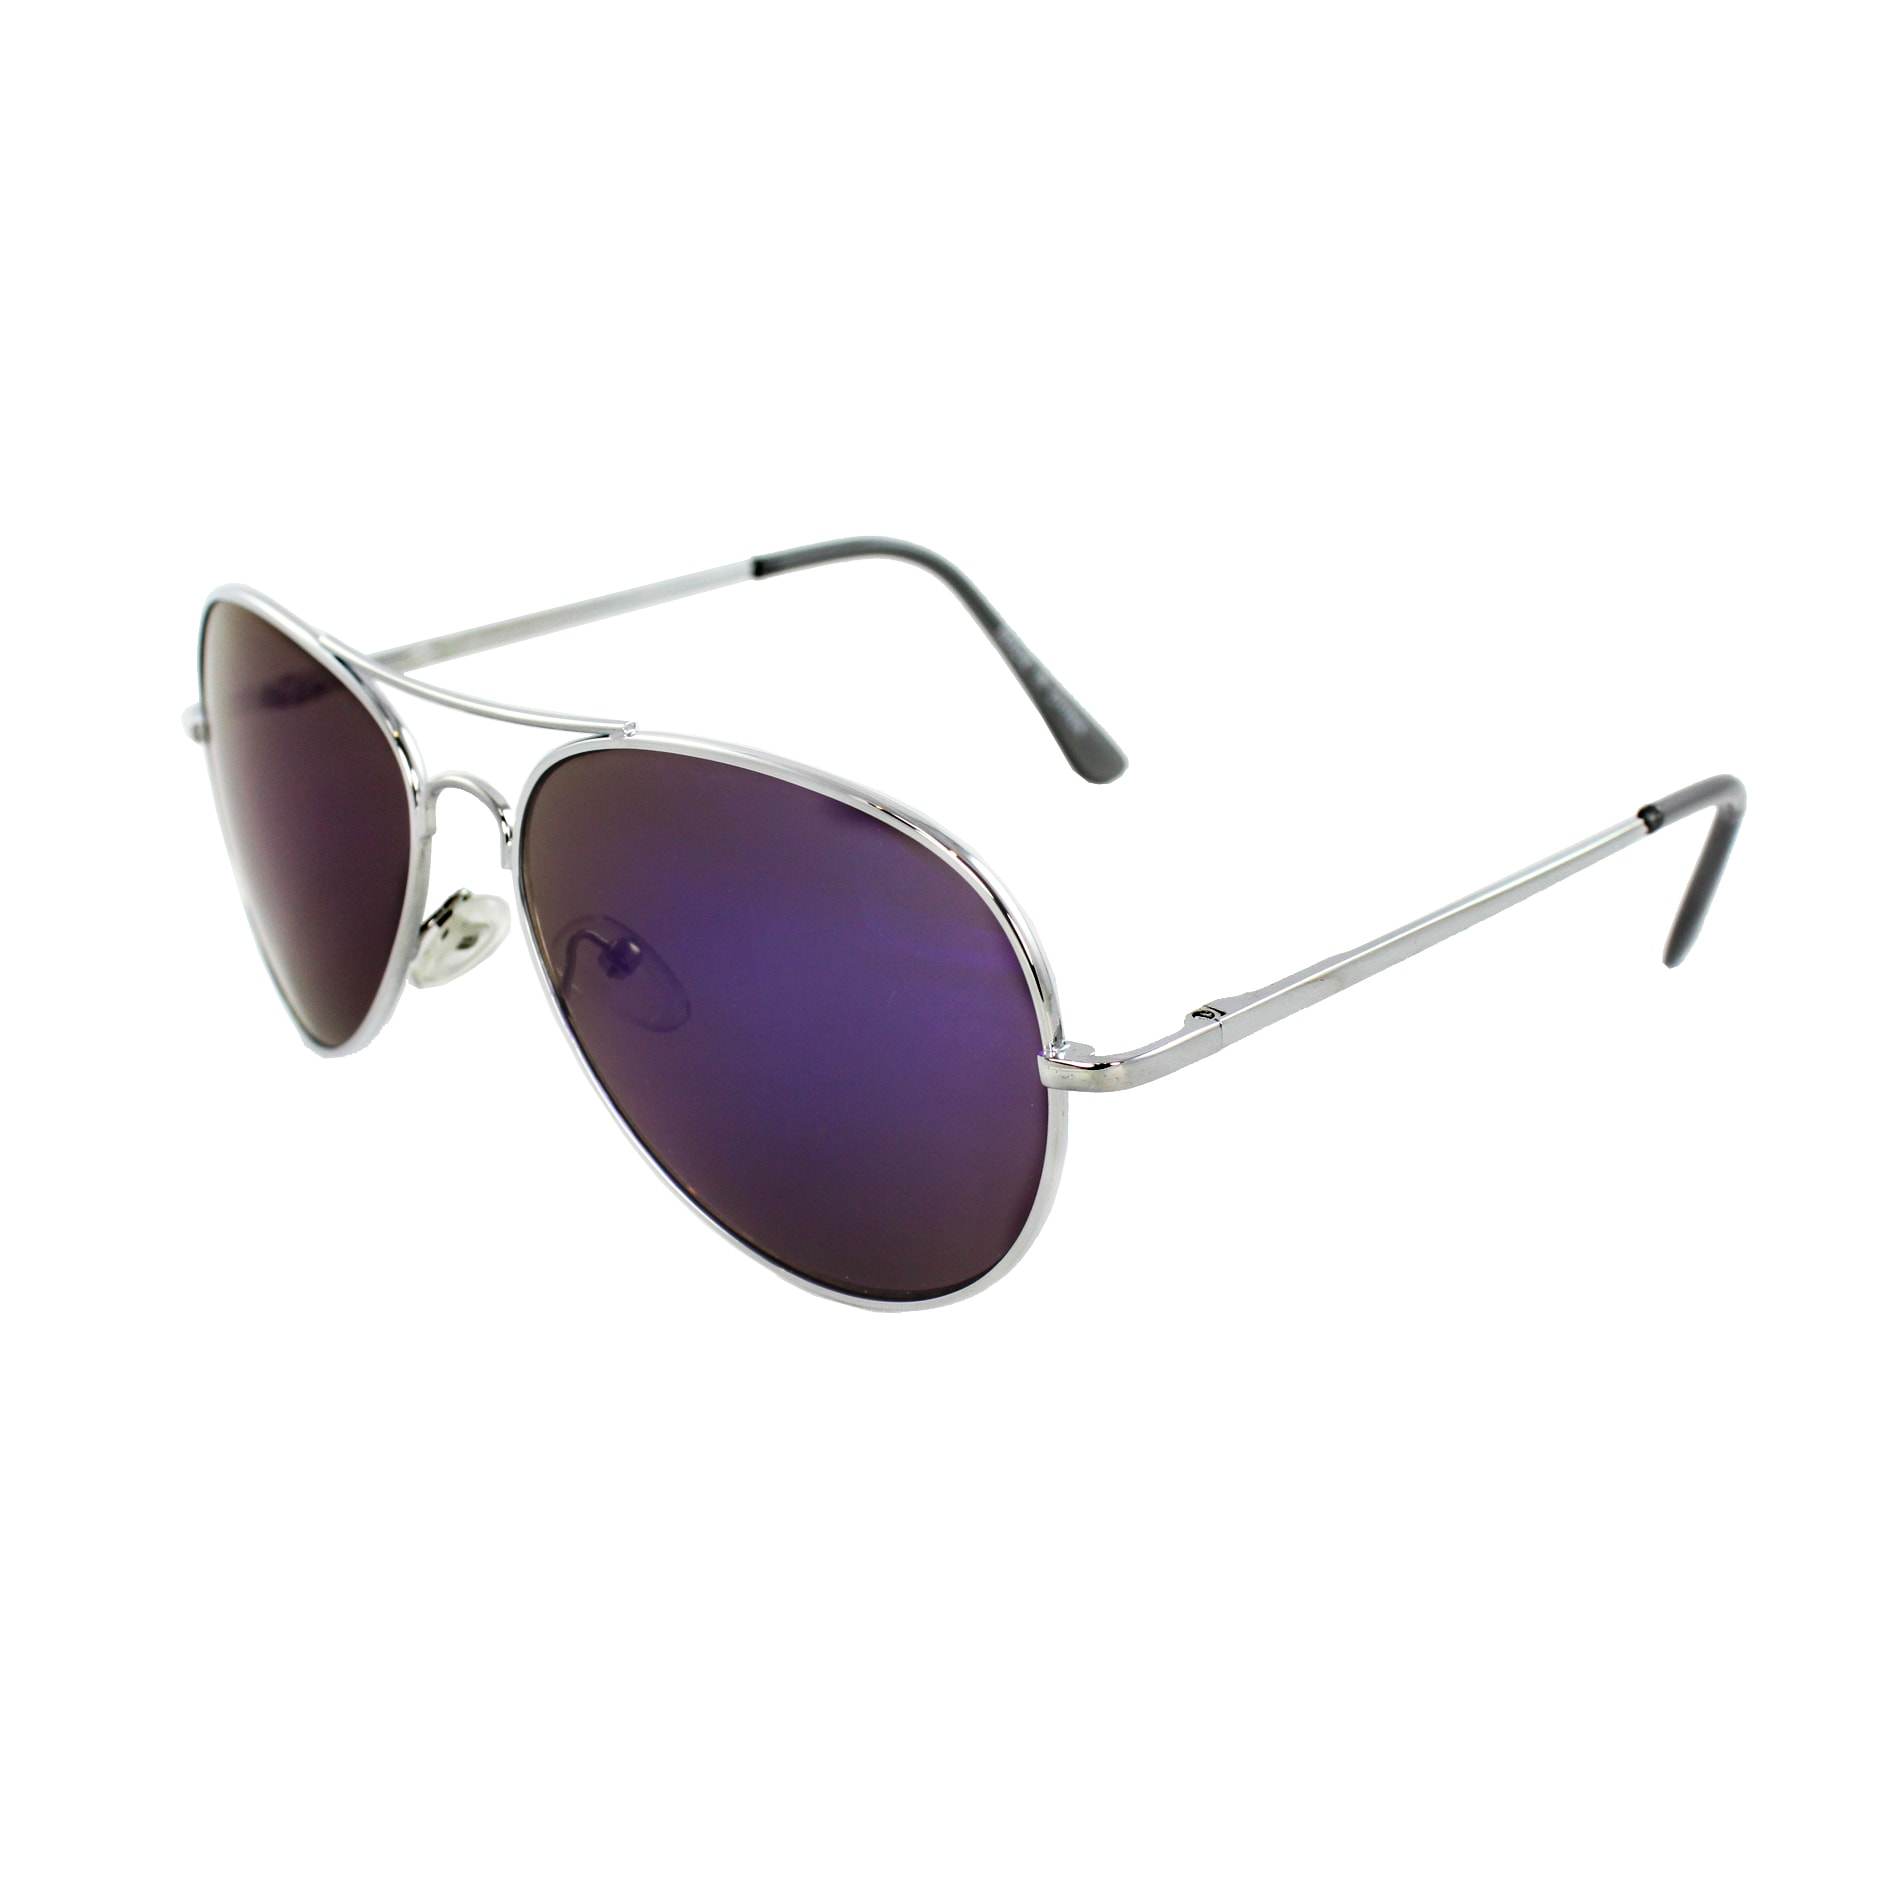 Unisex 30011R-SVRPL Metal/ Purple Mirror Aviator Sunglasses